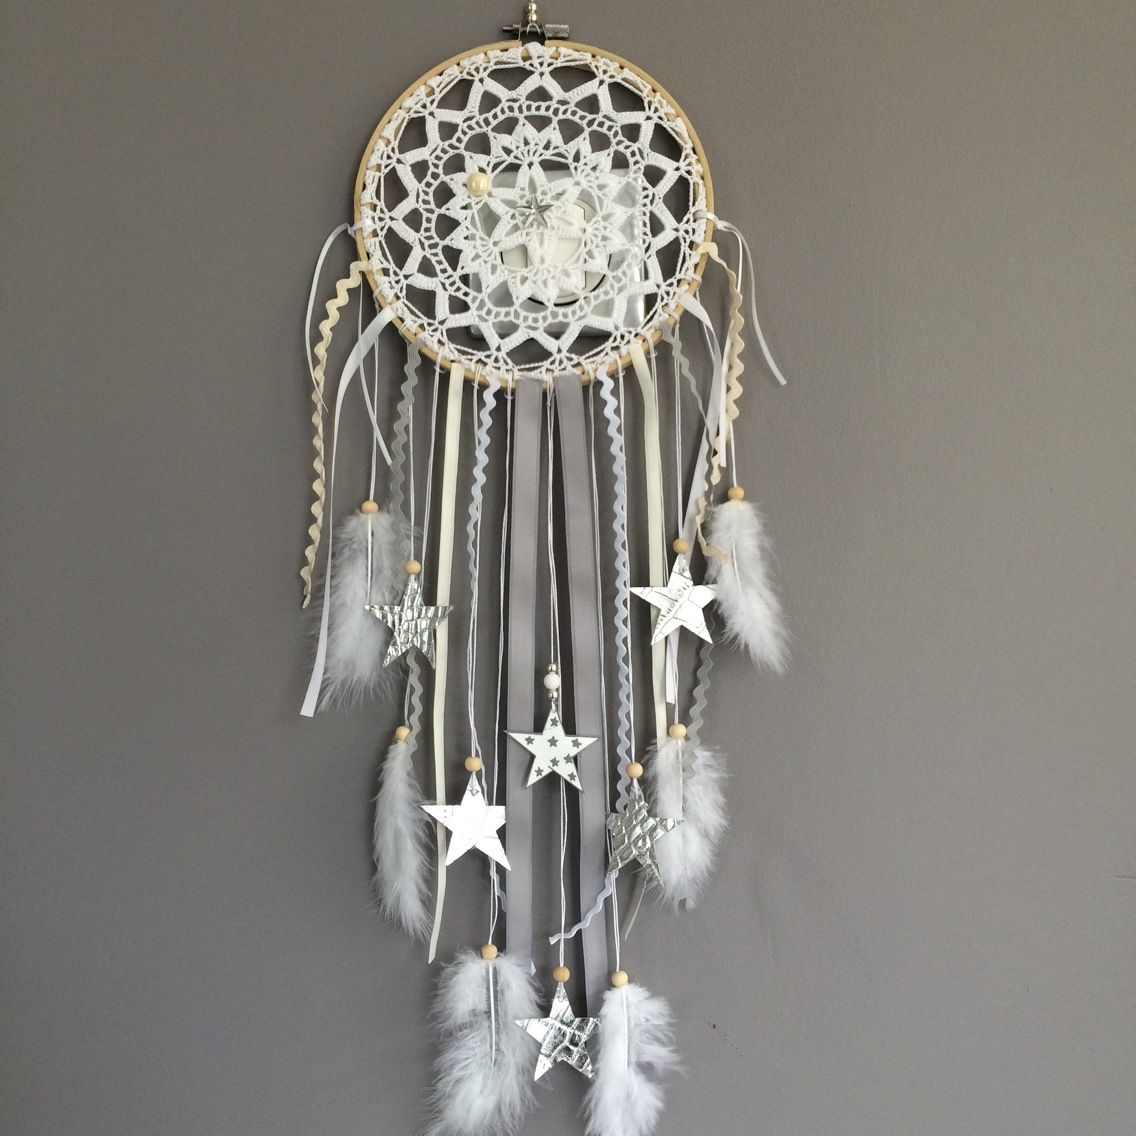 attrape r ves dreamcatcher attrapeur de r ves en dentelle plumes et perles bois. Black Bedroom Furniture Sets. Home Design Ideas